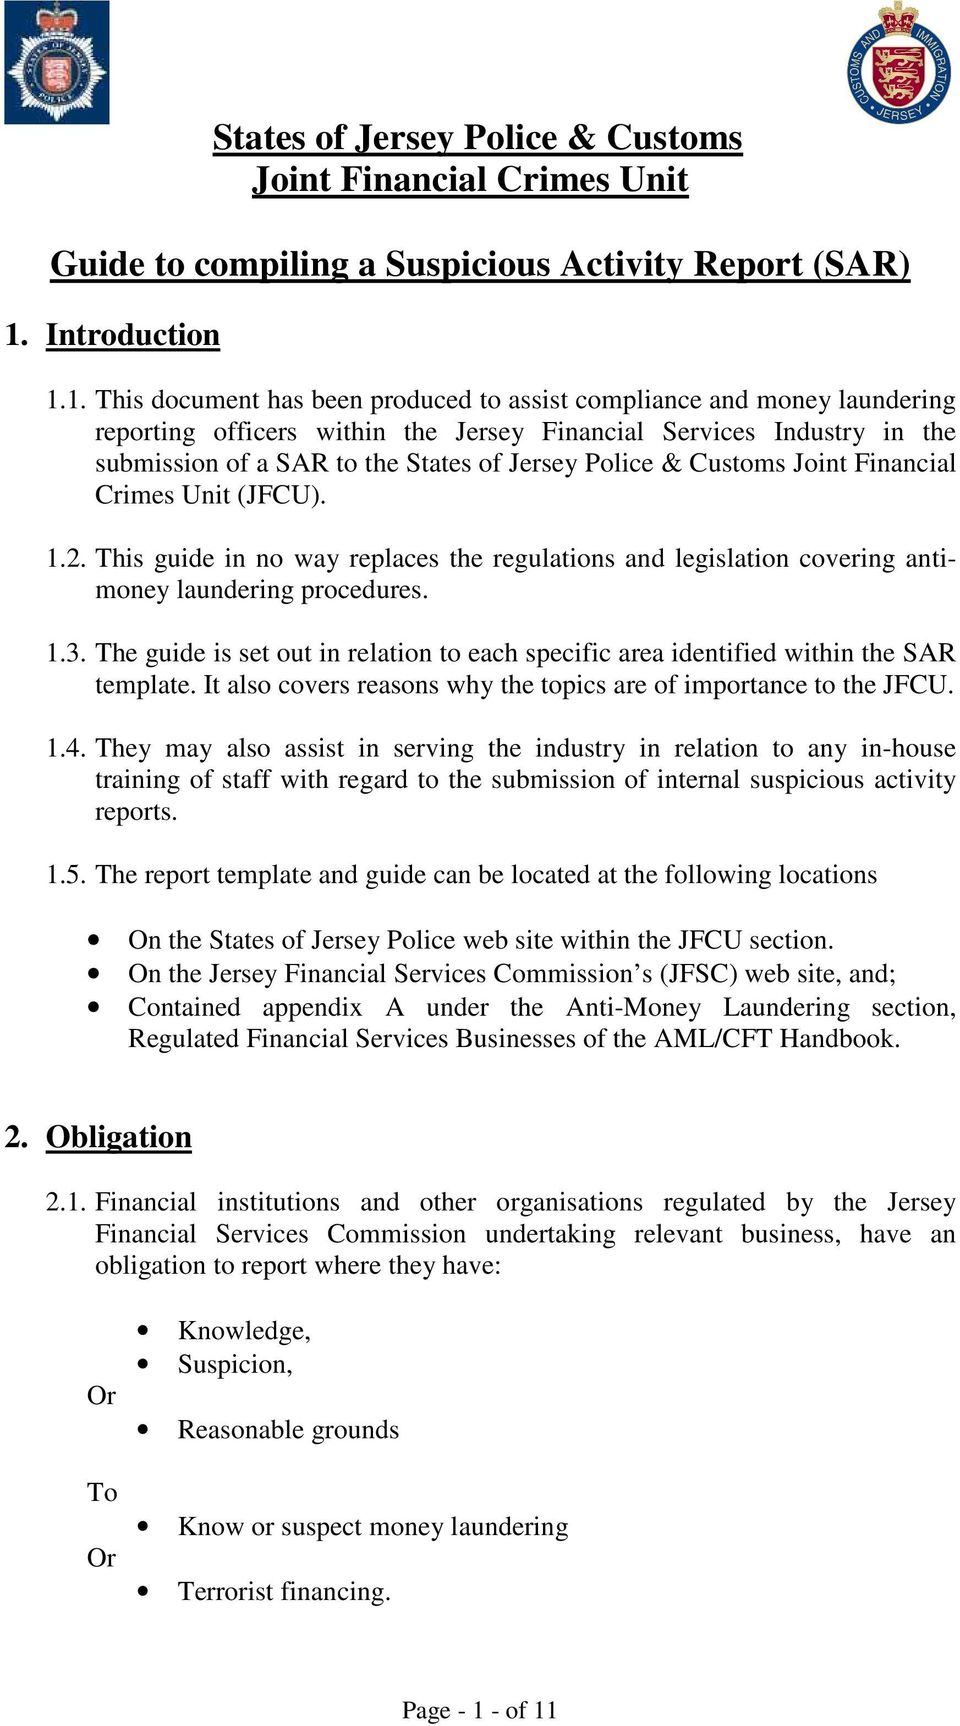 1. This document has been produced to assist compliance and money laundering reporting officers within the Jersey Financial Services Industry in the submission of a SAR to the States of Jersey Police